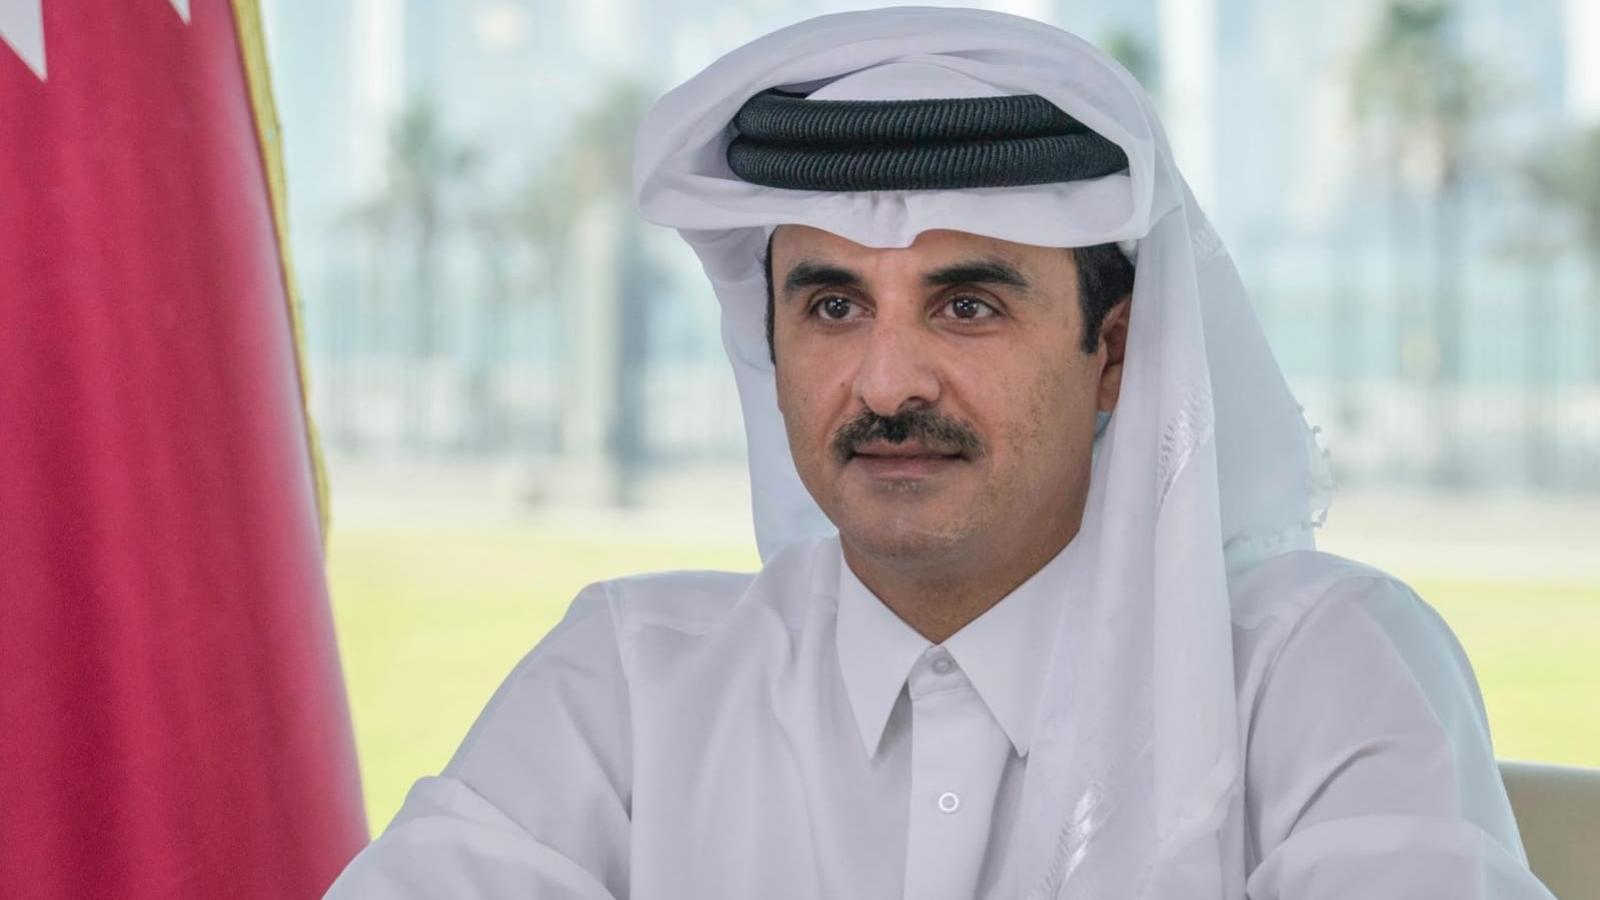 HH the Amir to head Qatar's delegation to 76th session of UN General Assembly